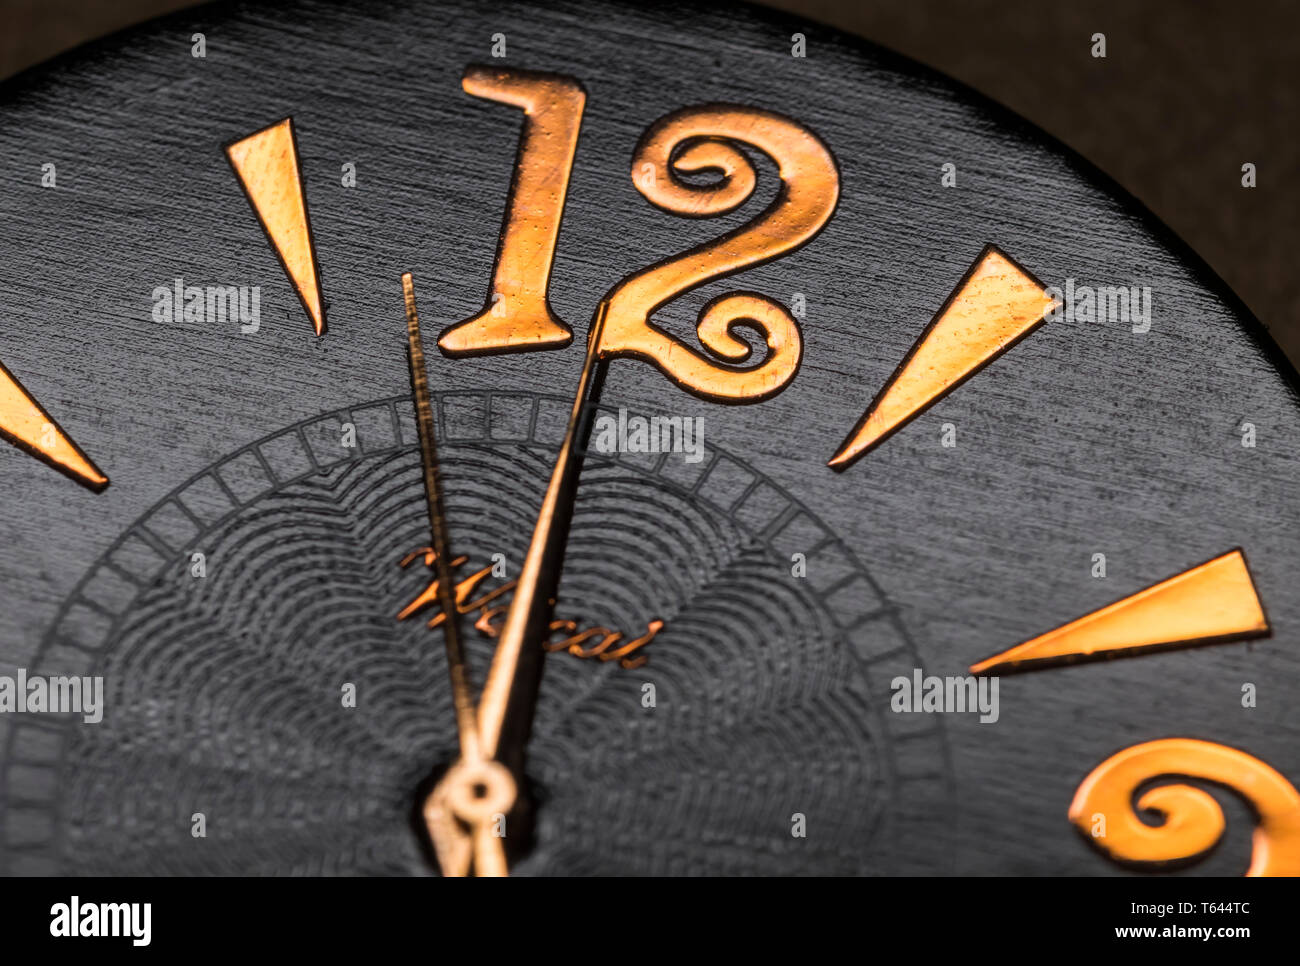 Minute, hour and second hands on a watch face showing nearly 12 o'clock midnight or midday. Macro clock face. Time concept. - Stock Image